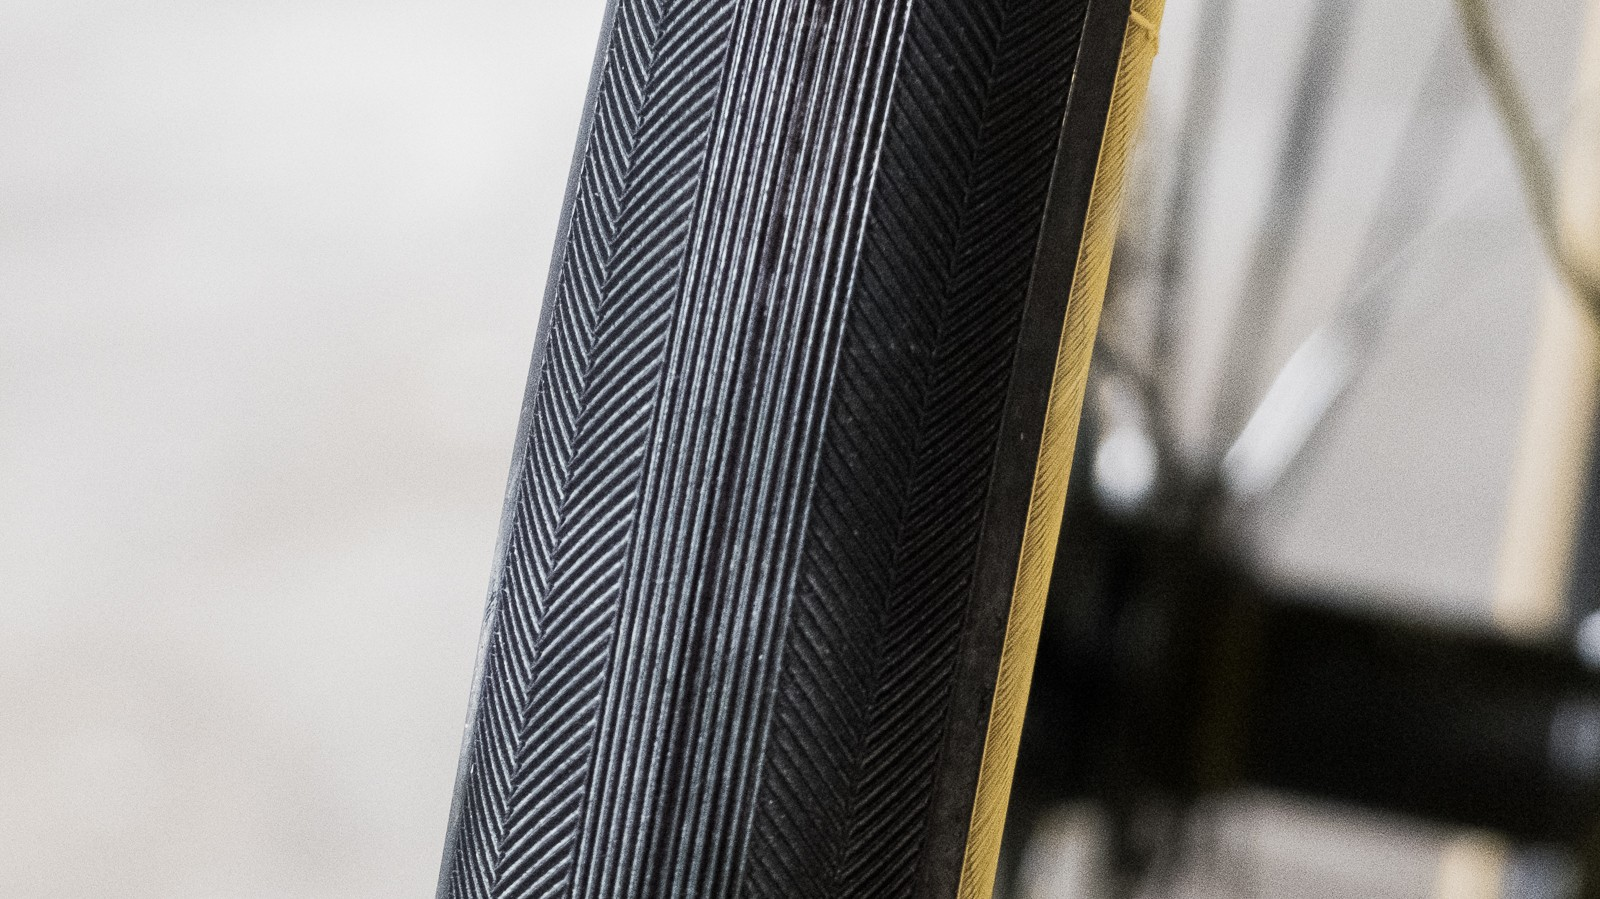 The tyres, rather uniquely for a lightweight road tyre, feature a patterned tread